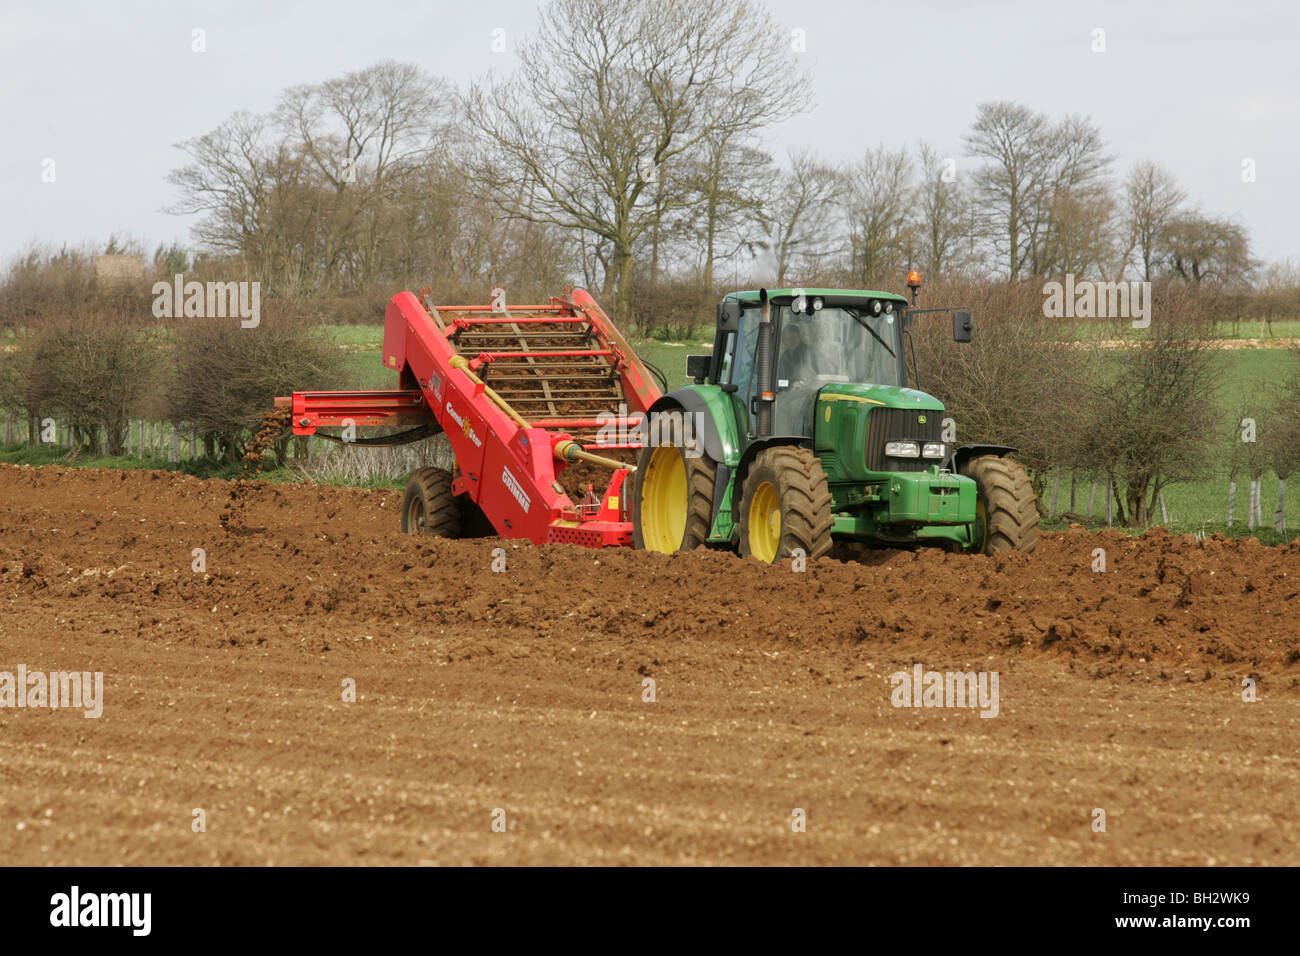 Tractors stone separating ready for planting potatoes - Stock Image